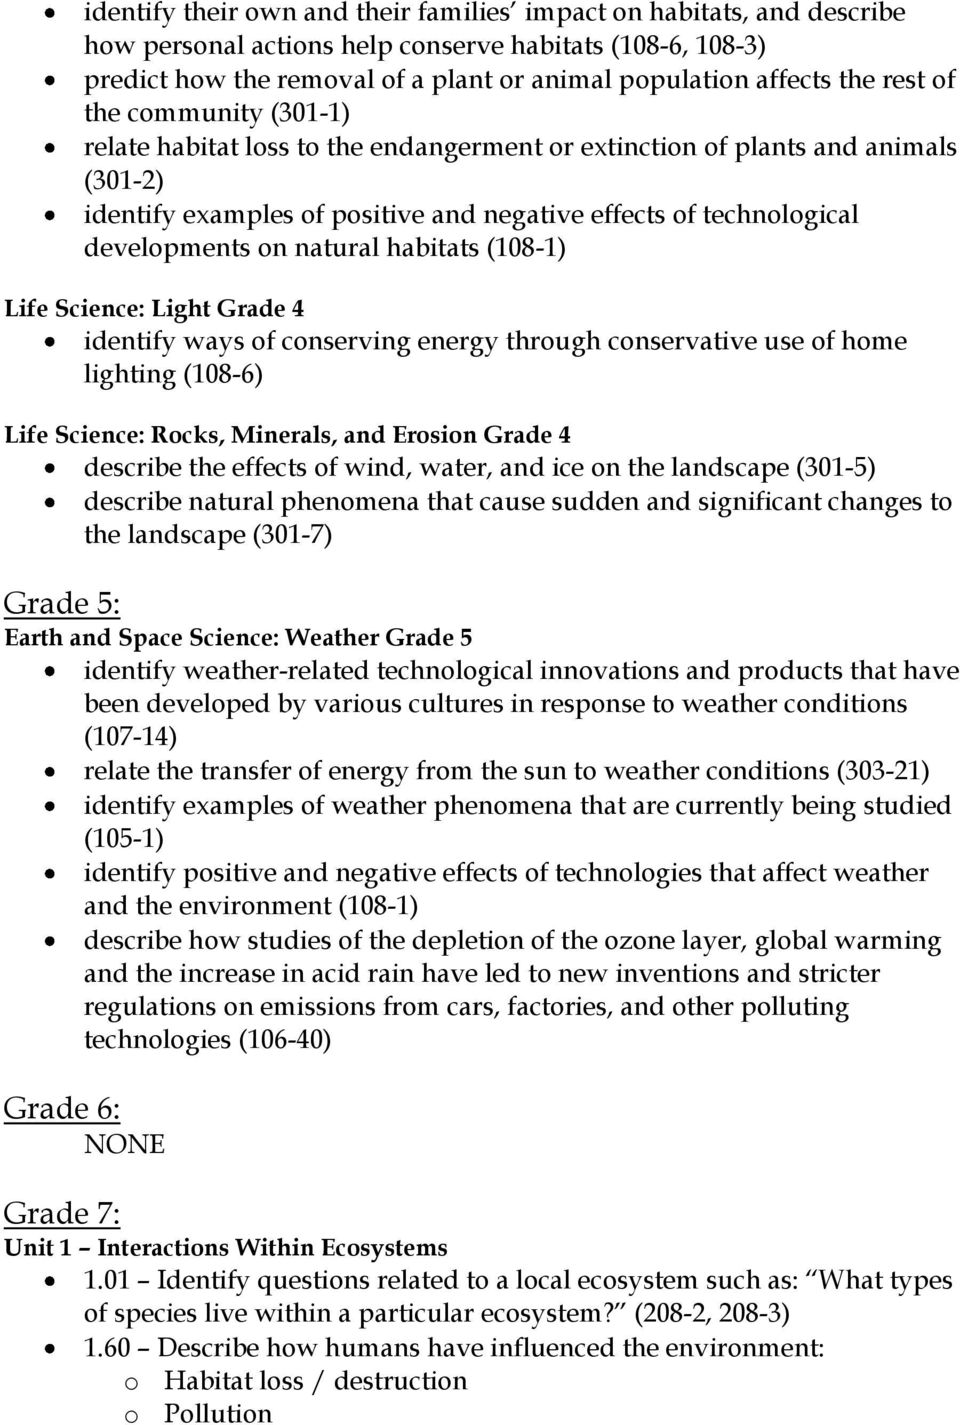 natural habitats (108-1) Life Science: Light Grade 4 identify ways of conserving energy through conservative use of home lighting (108-6) Life Science: Rocks, Minerals, and Erosion Grade 4 describe